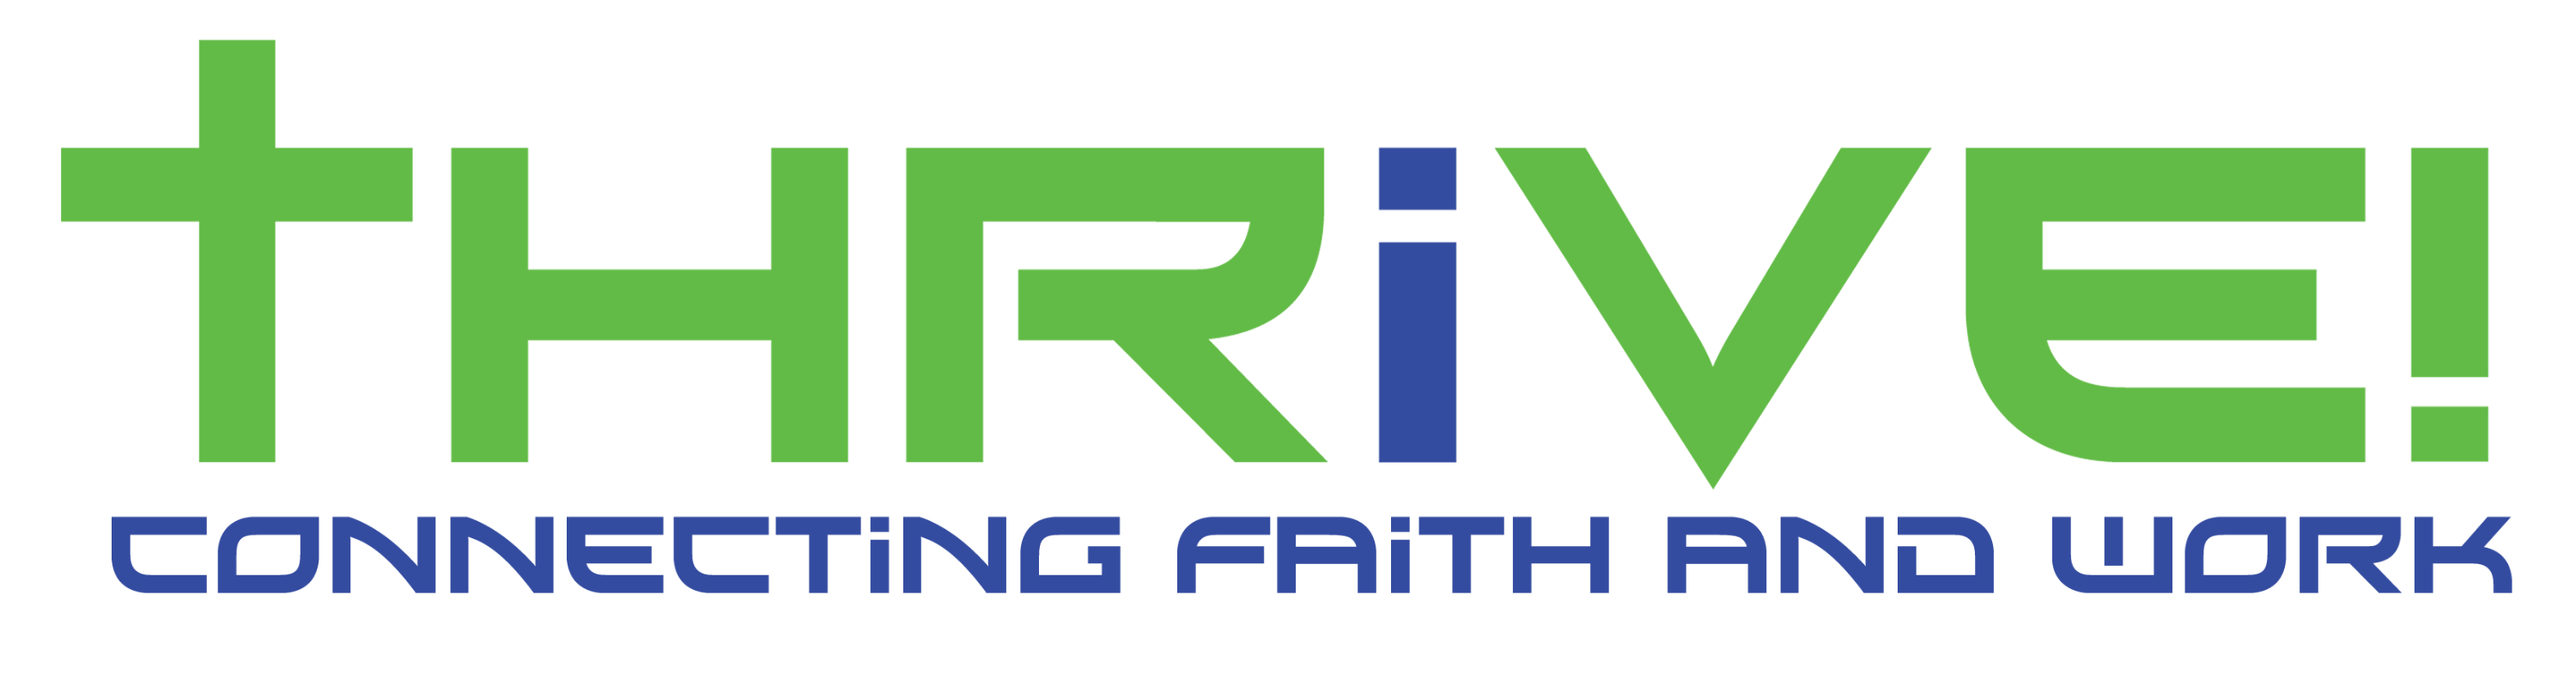 Thrive! Bloomington/Edina